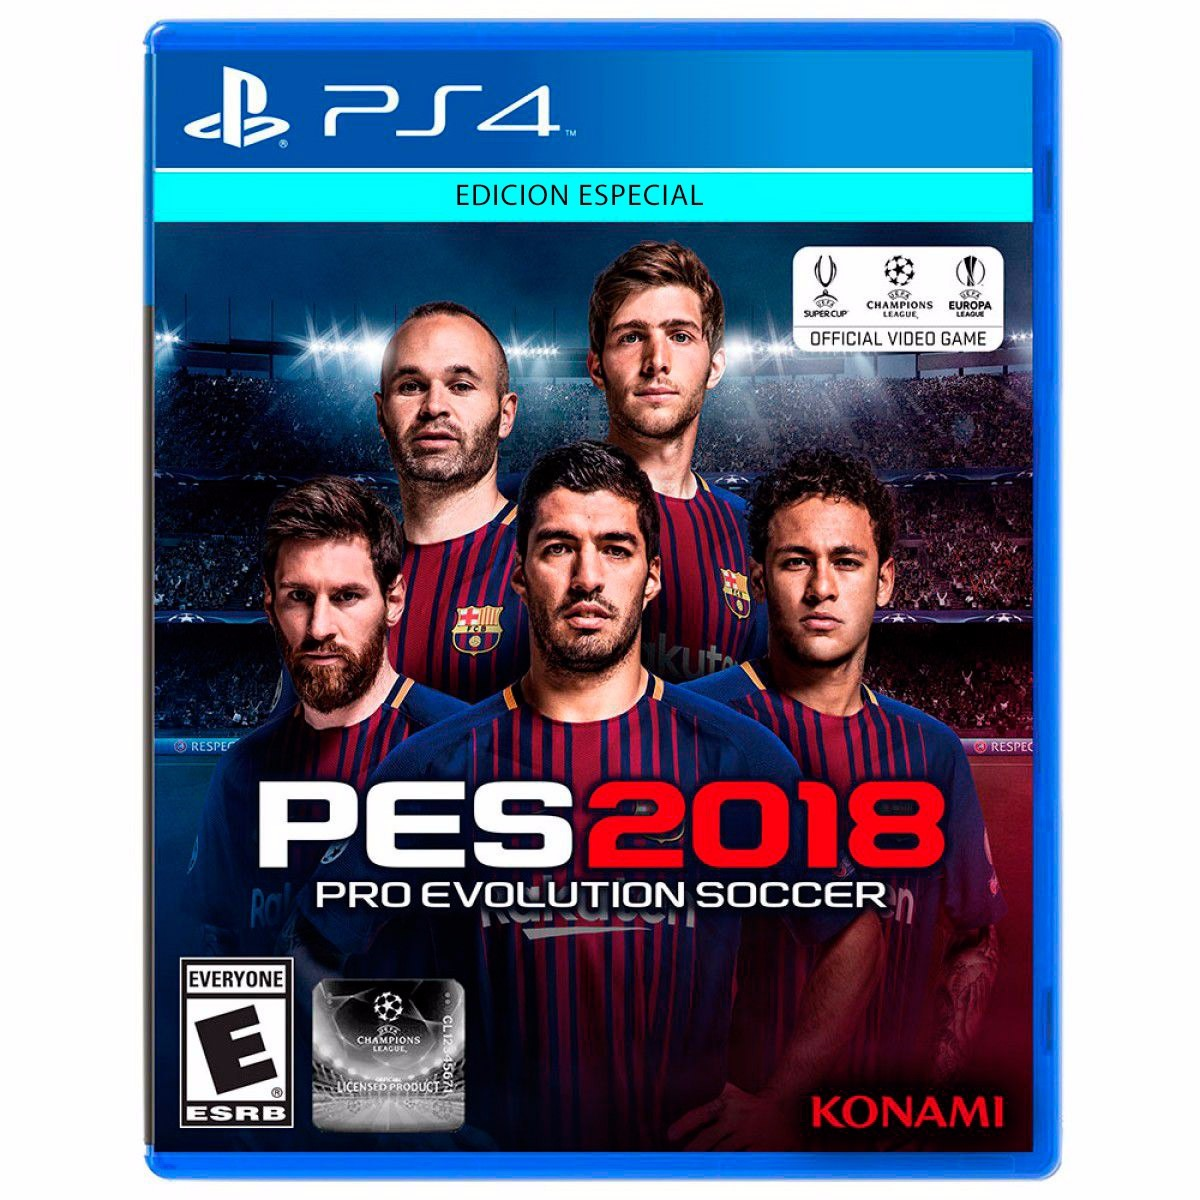 Pes 2018 Ps4 Fisico Juegos Playstation 4 Pro Evolution 18 1 199